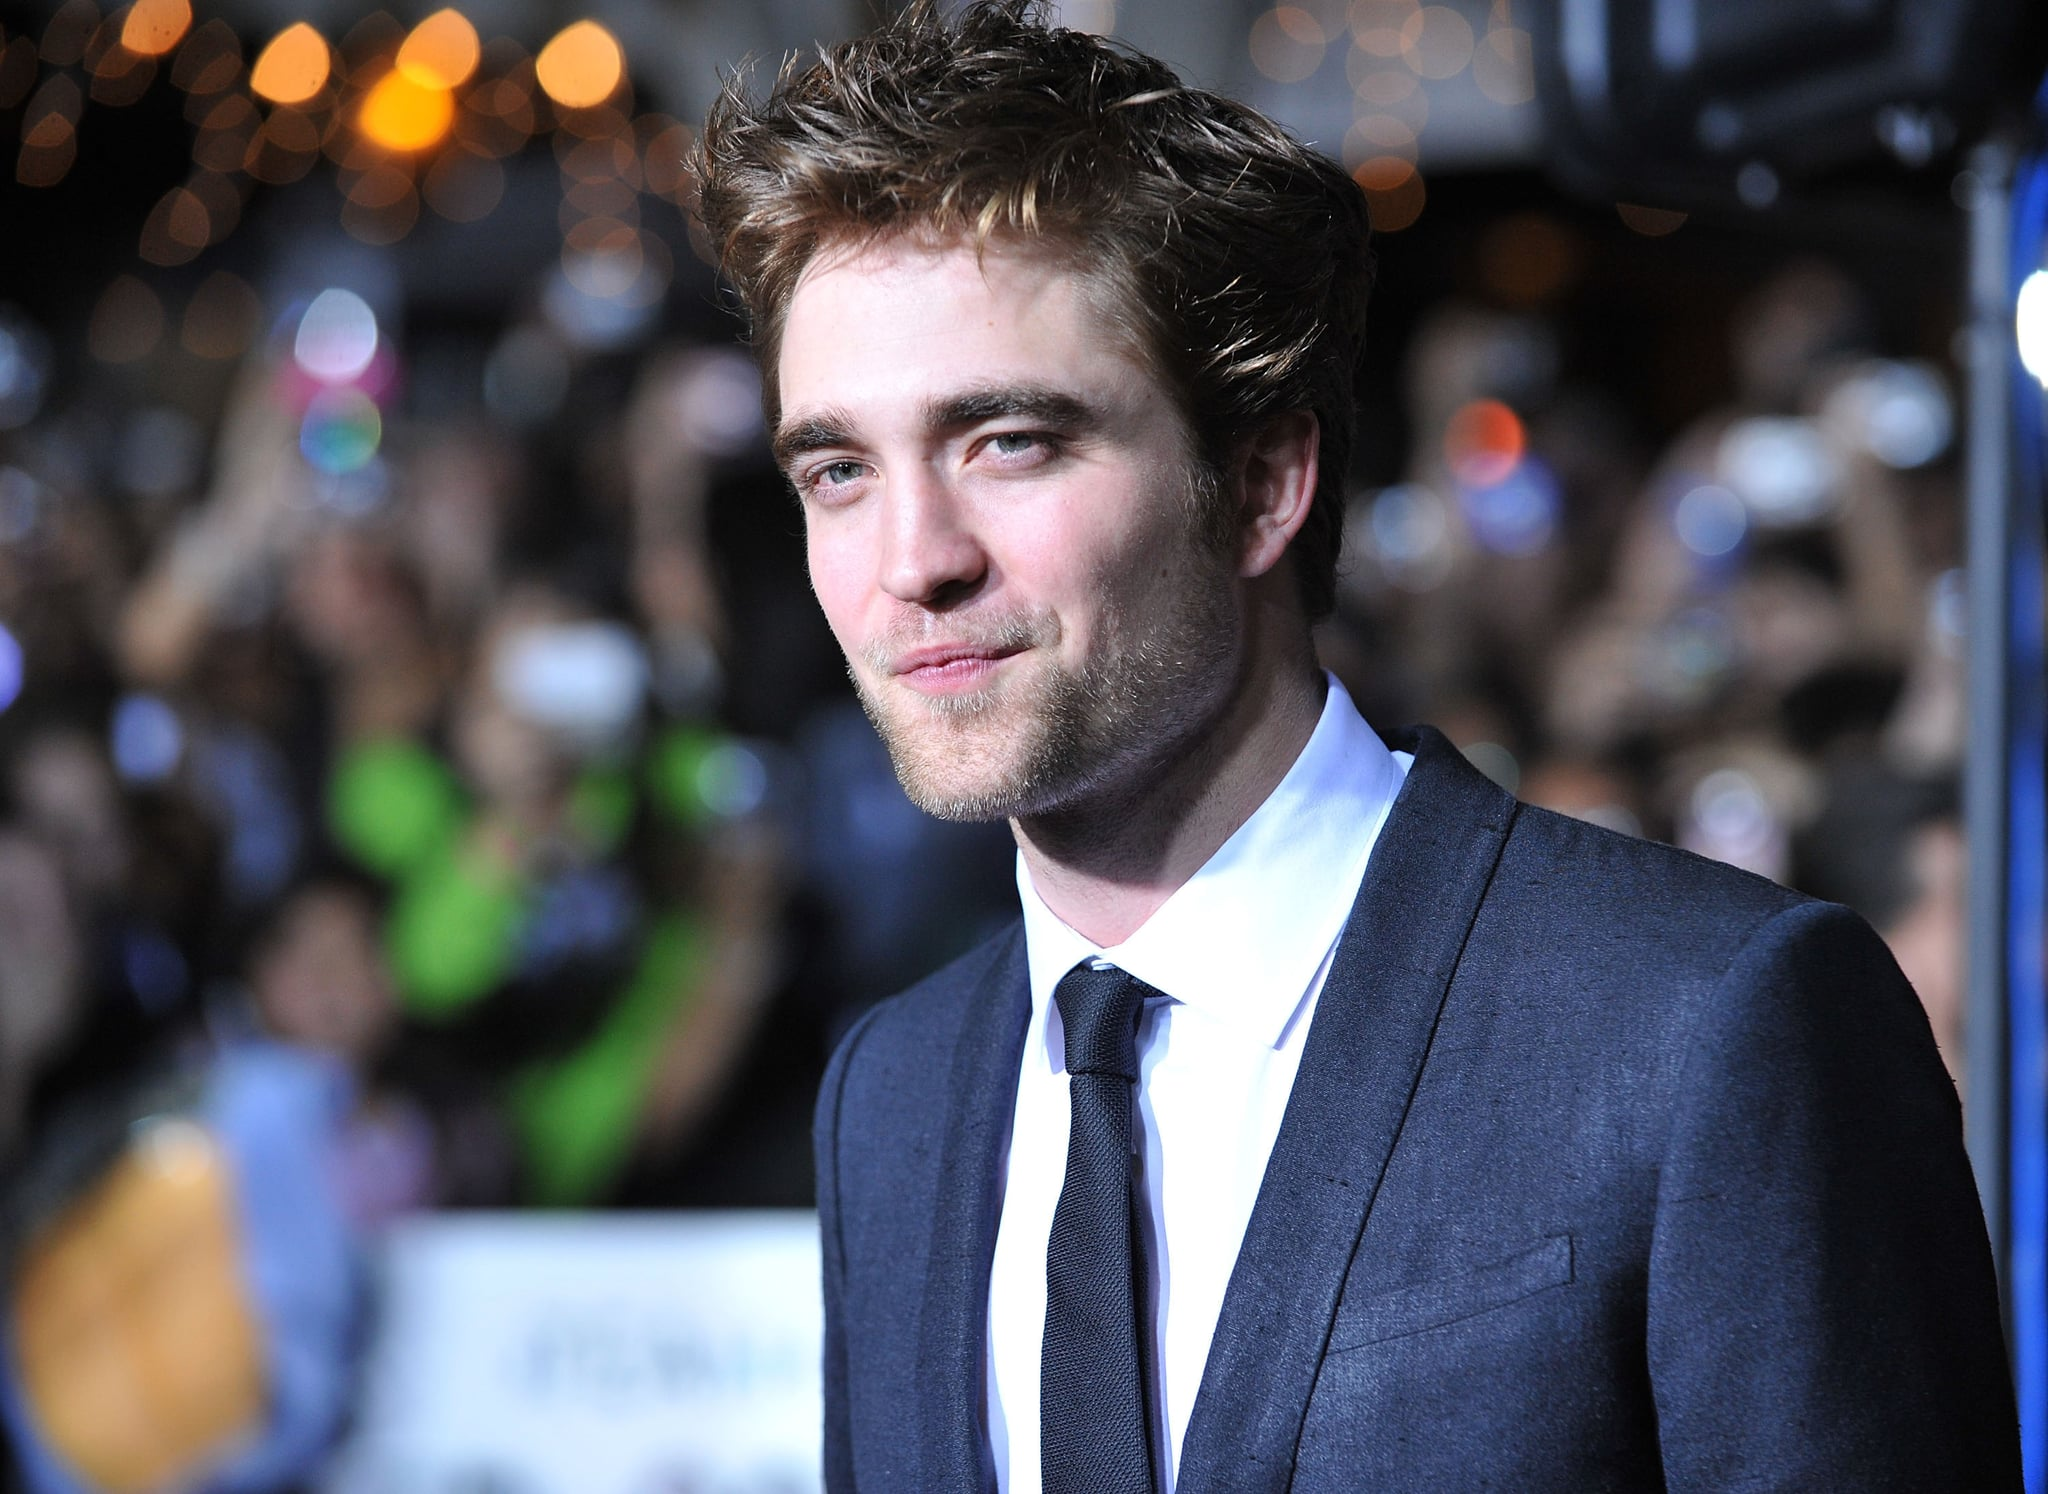 pattinson robert twilight movies april films actor does fit shares